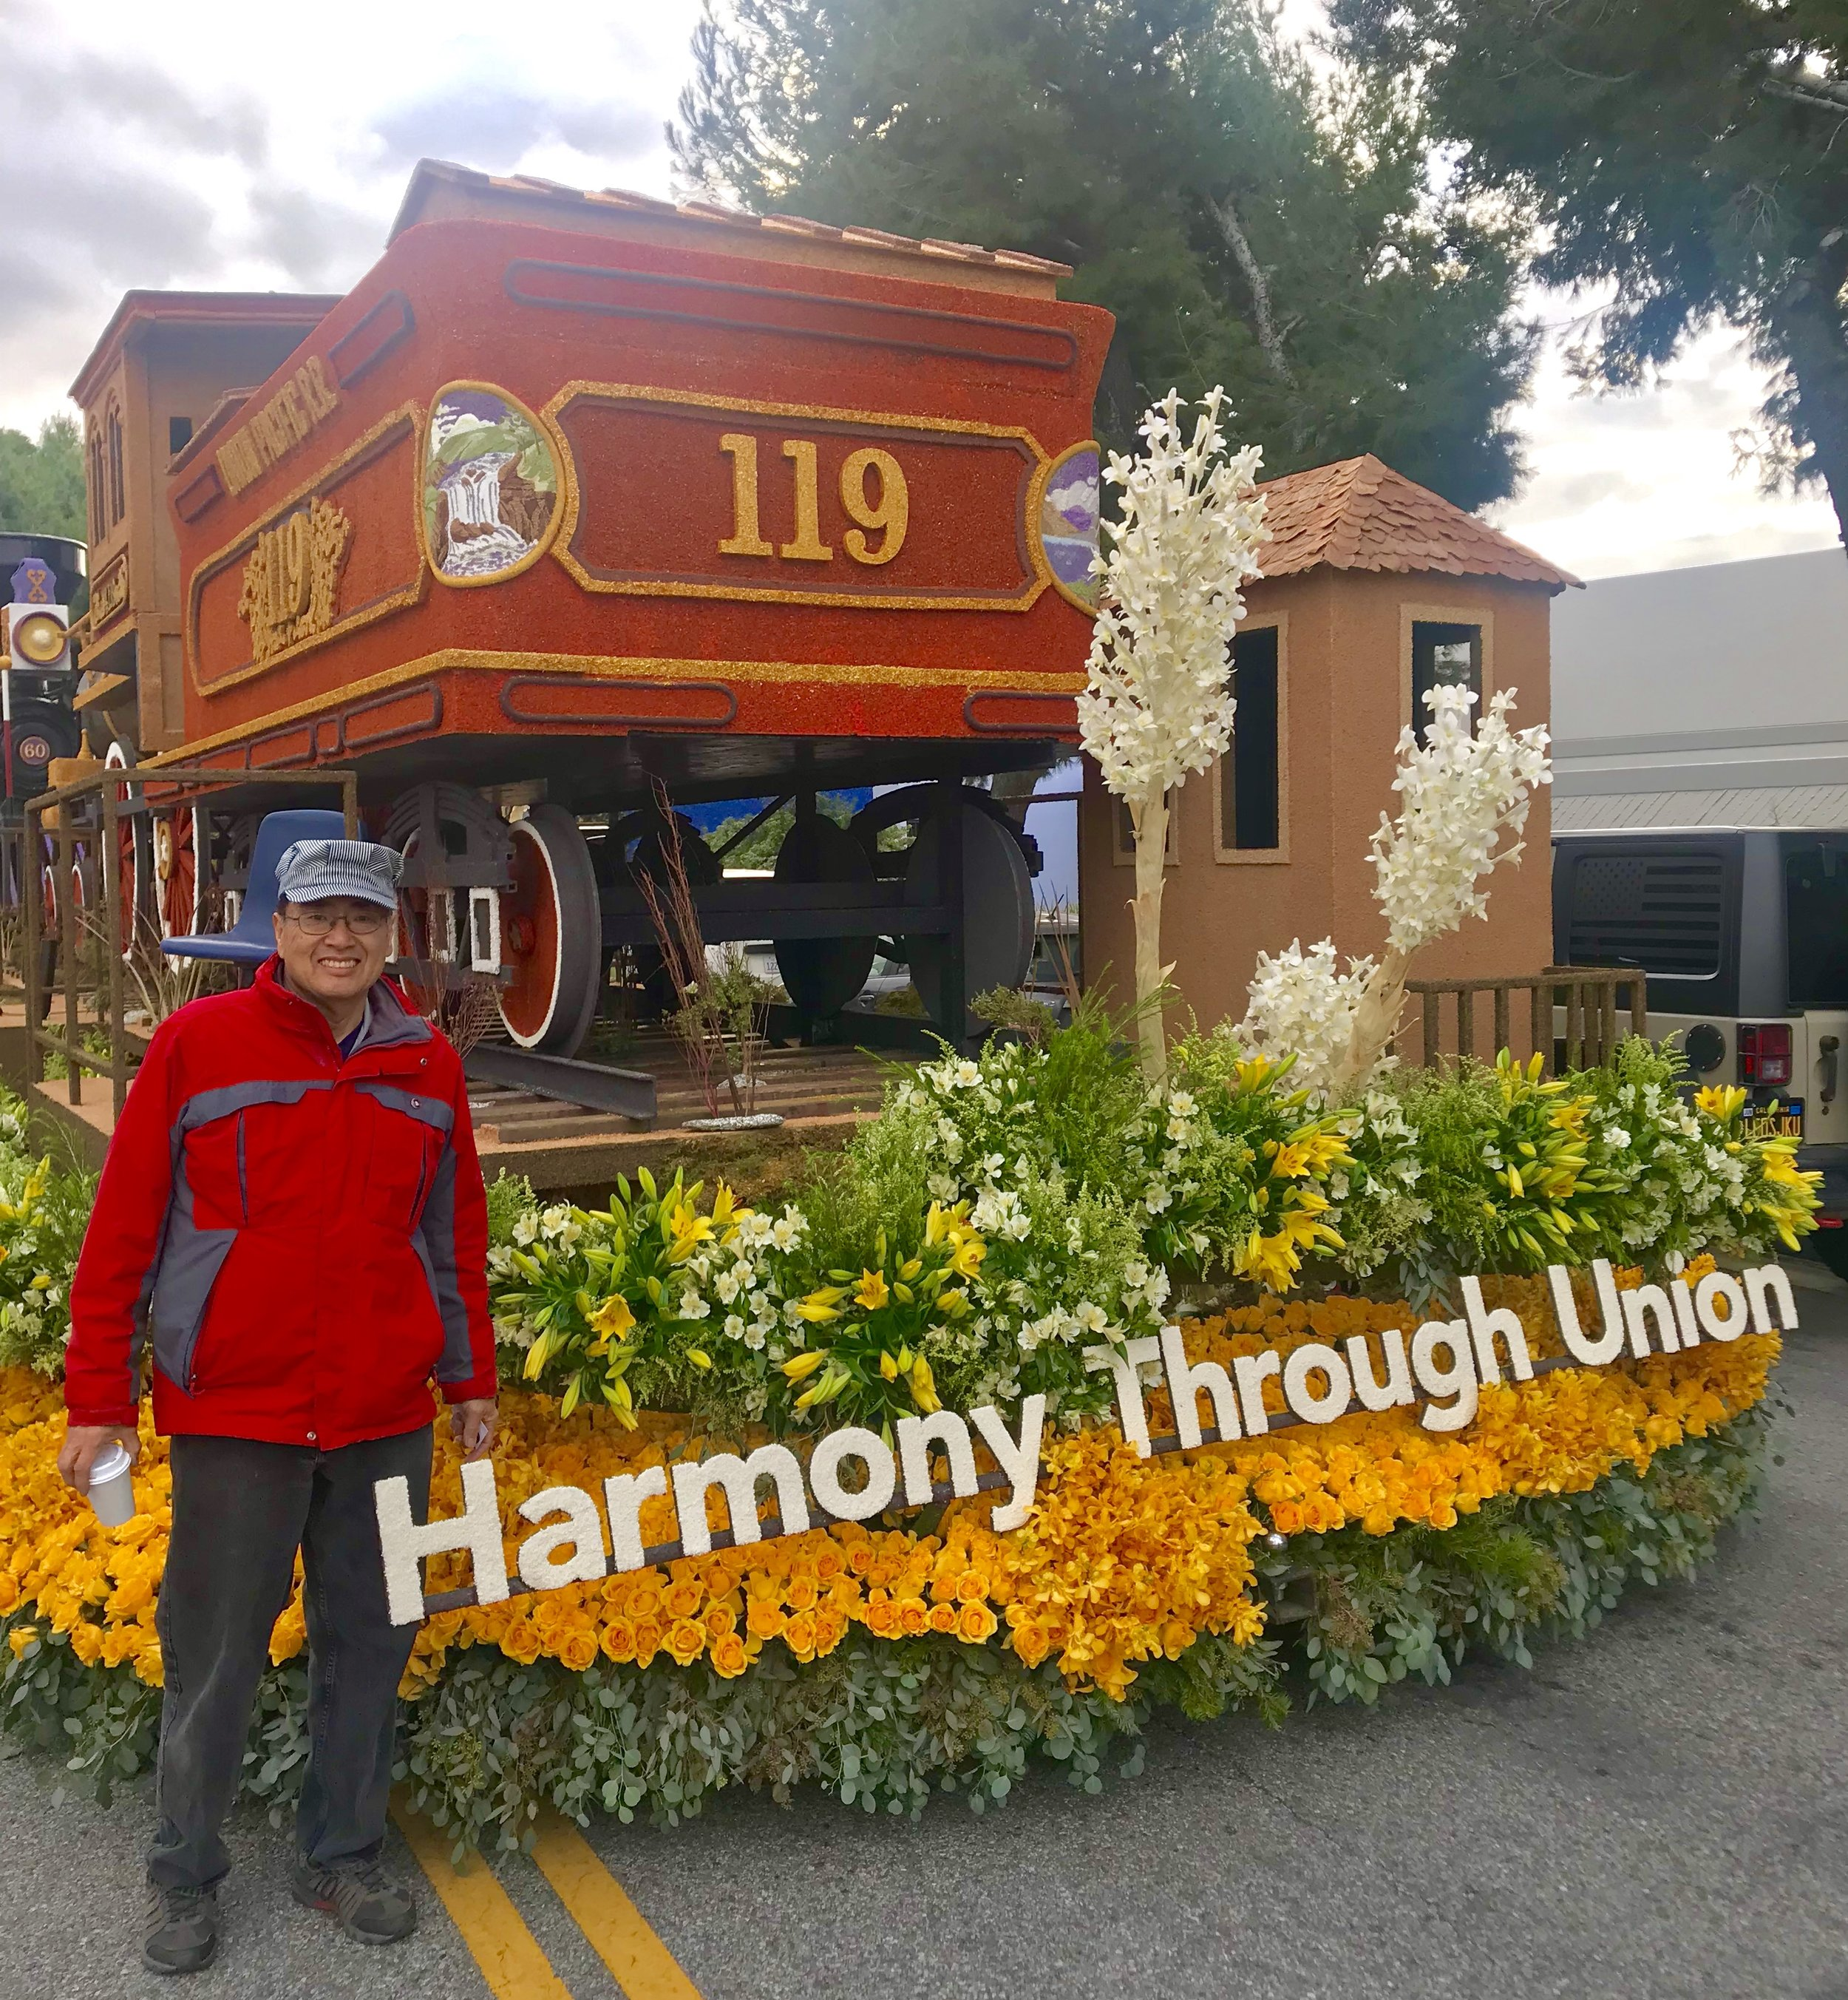 Calvin Fujiwara, the float's animator and observer, poses on Judging Day at the front of the Harmony Through Union float.